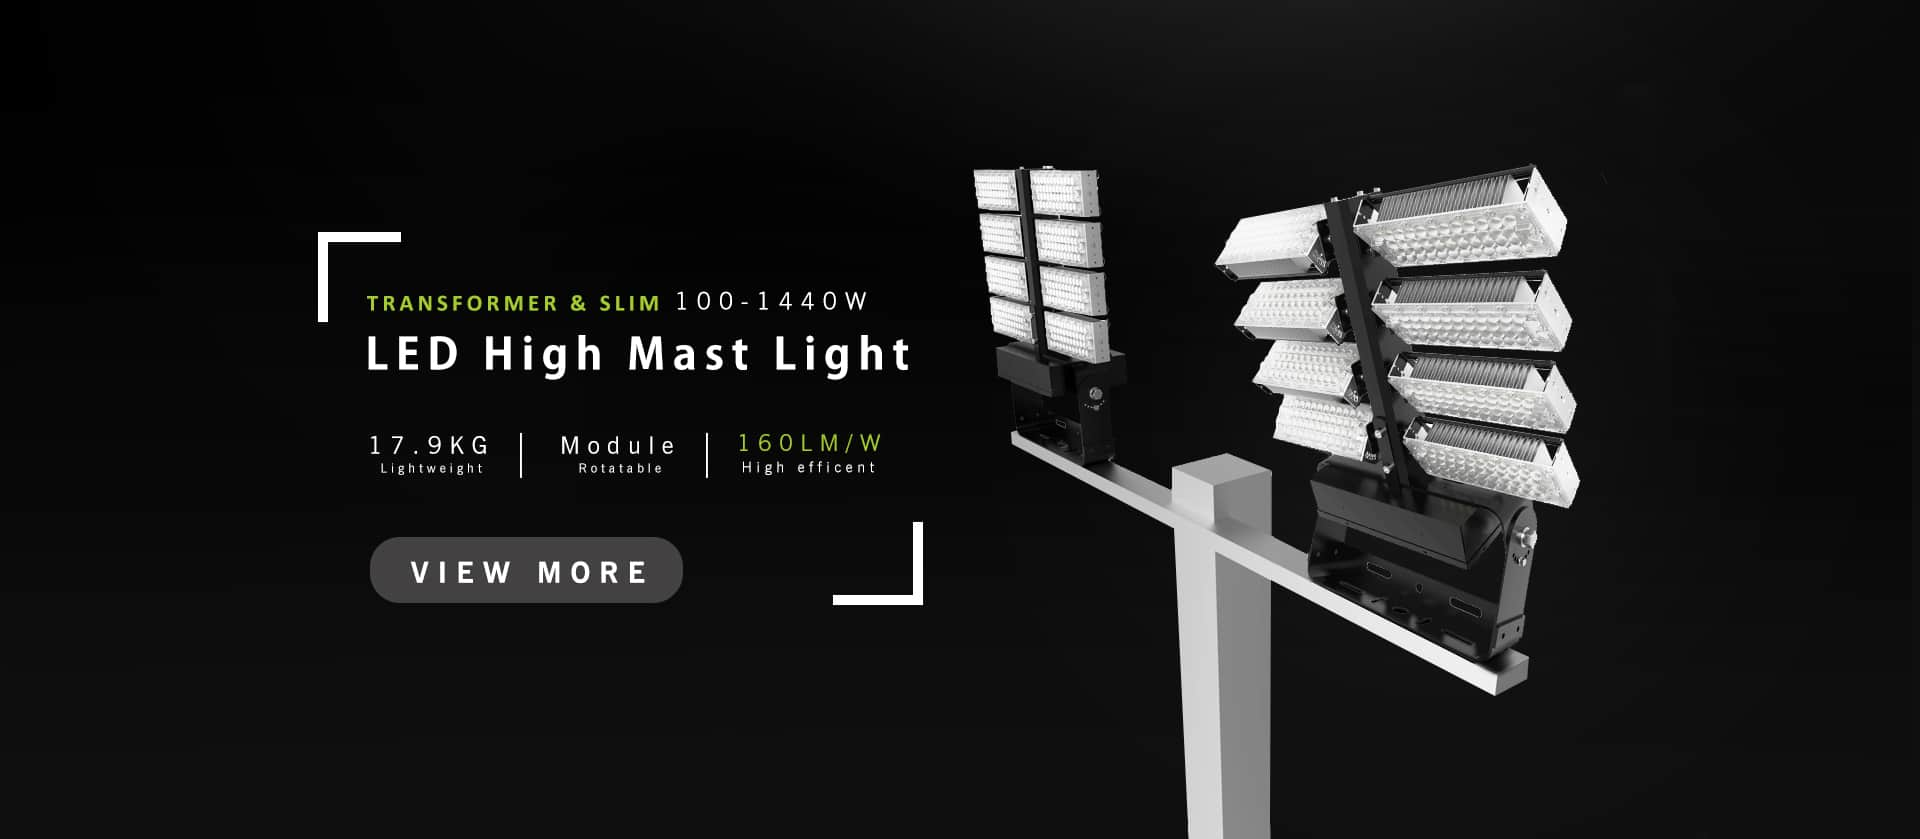 led high mast light manufacturers